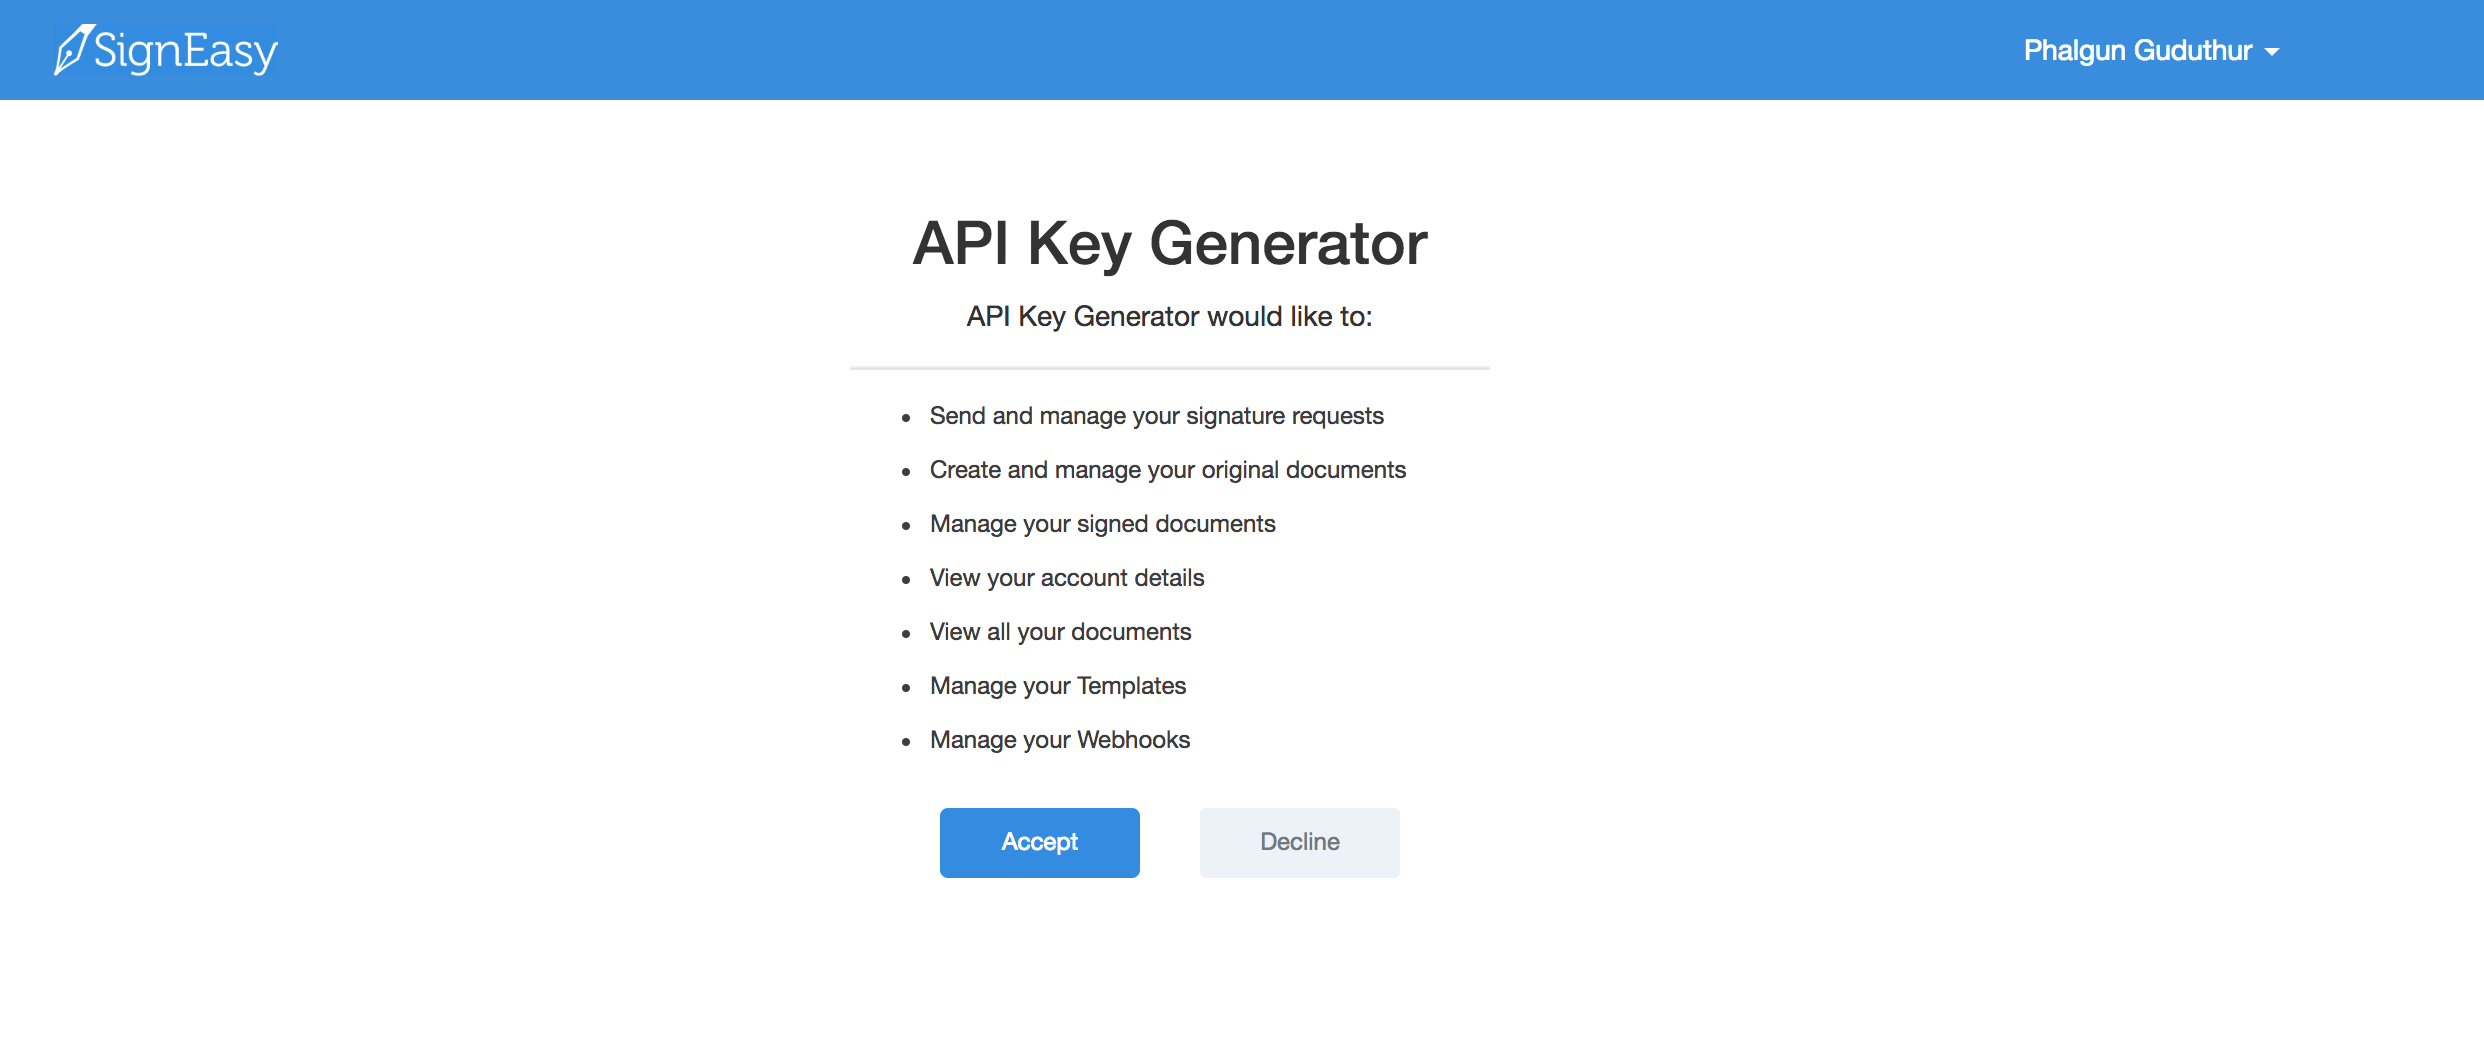 Permissions screen for generating API keys